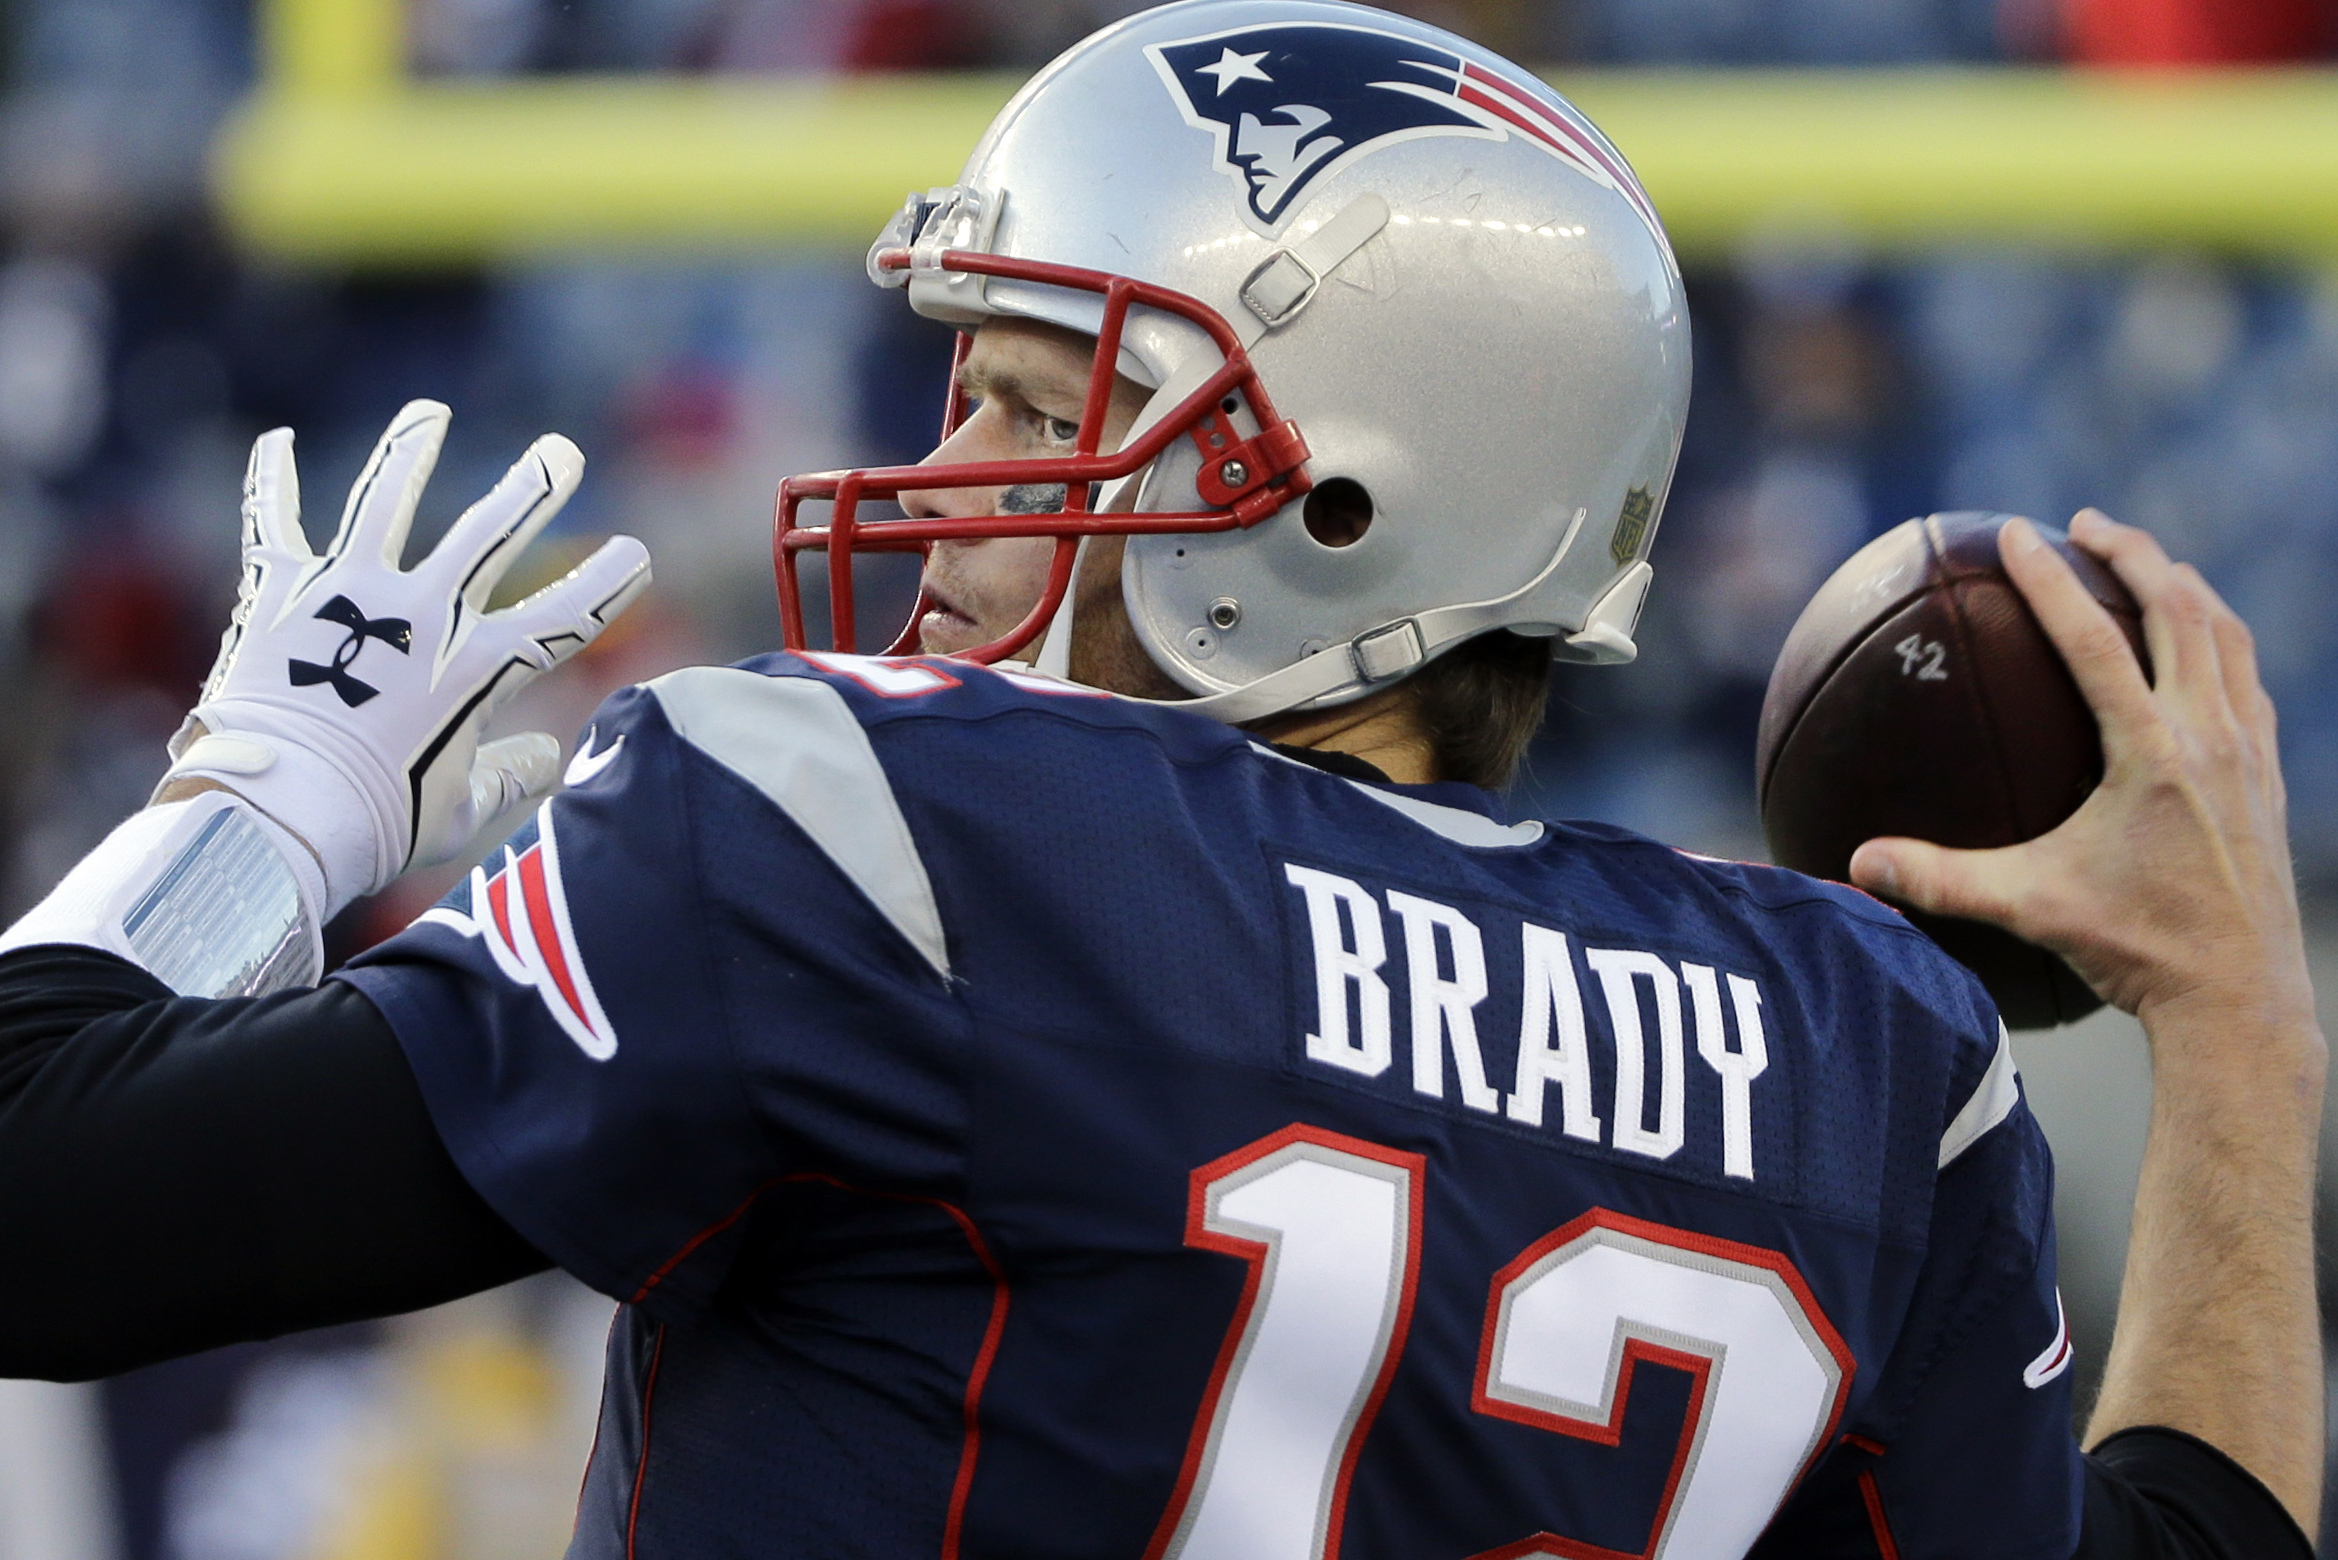 Betting trends patriots broncos highlights football betting odds explained baseball